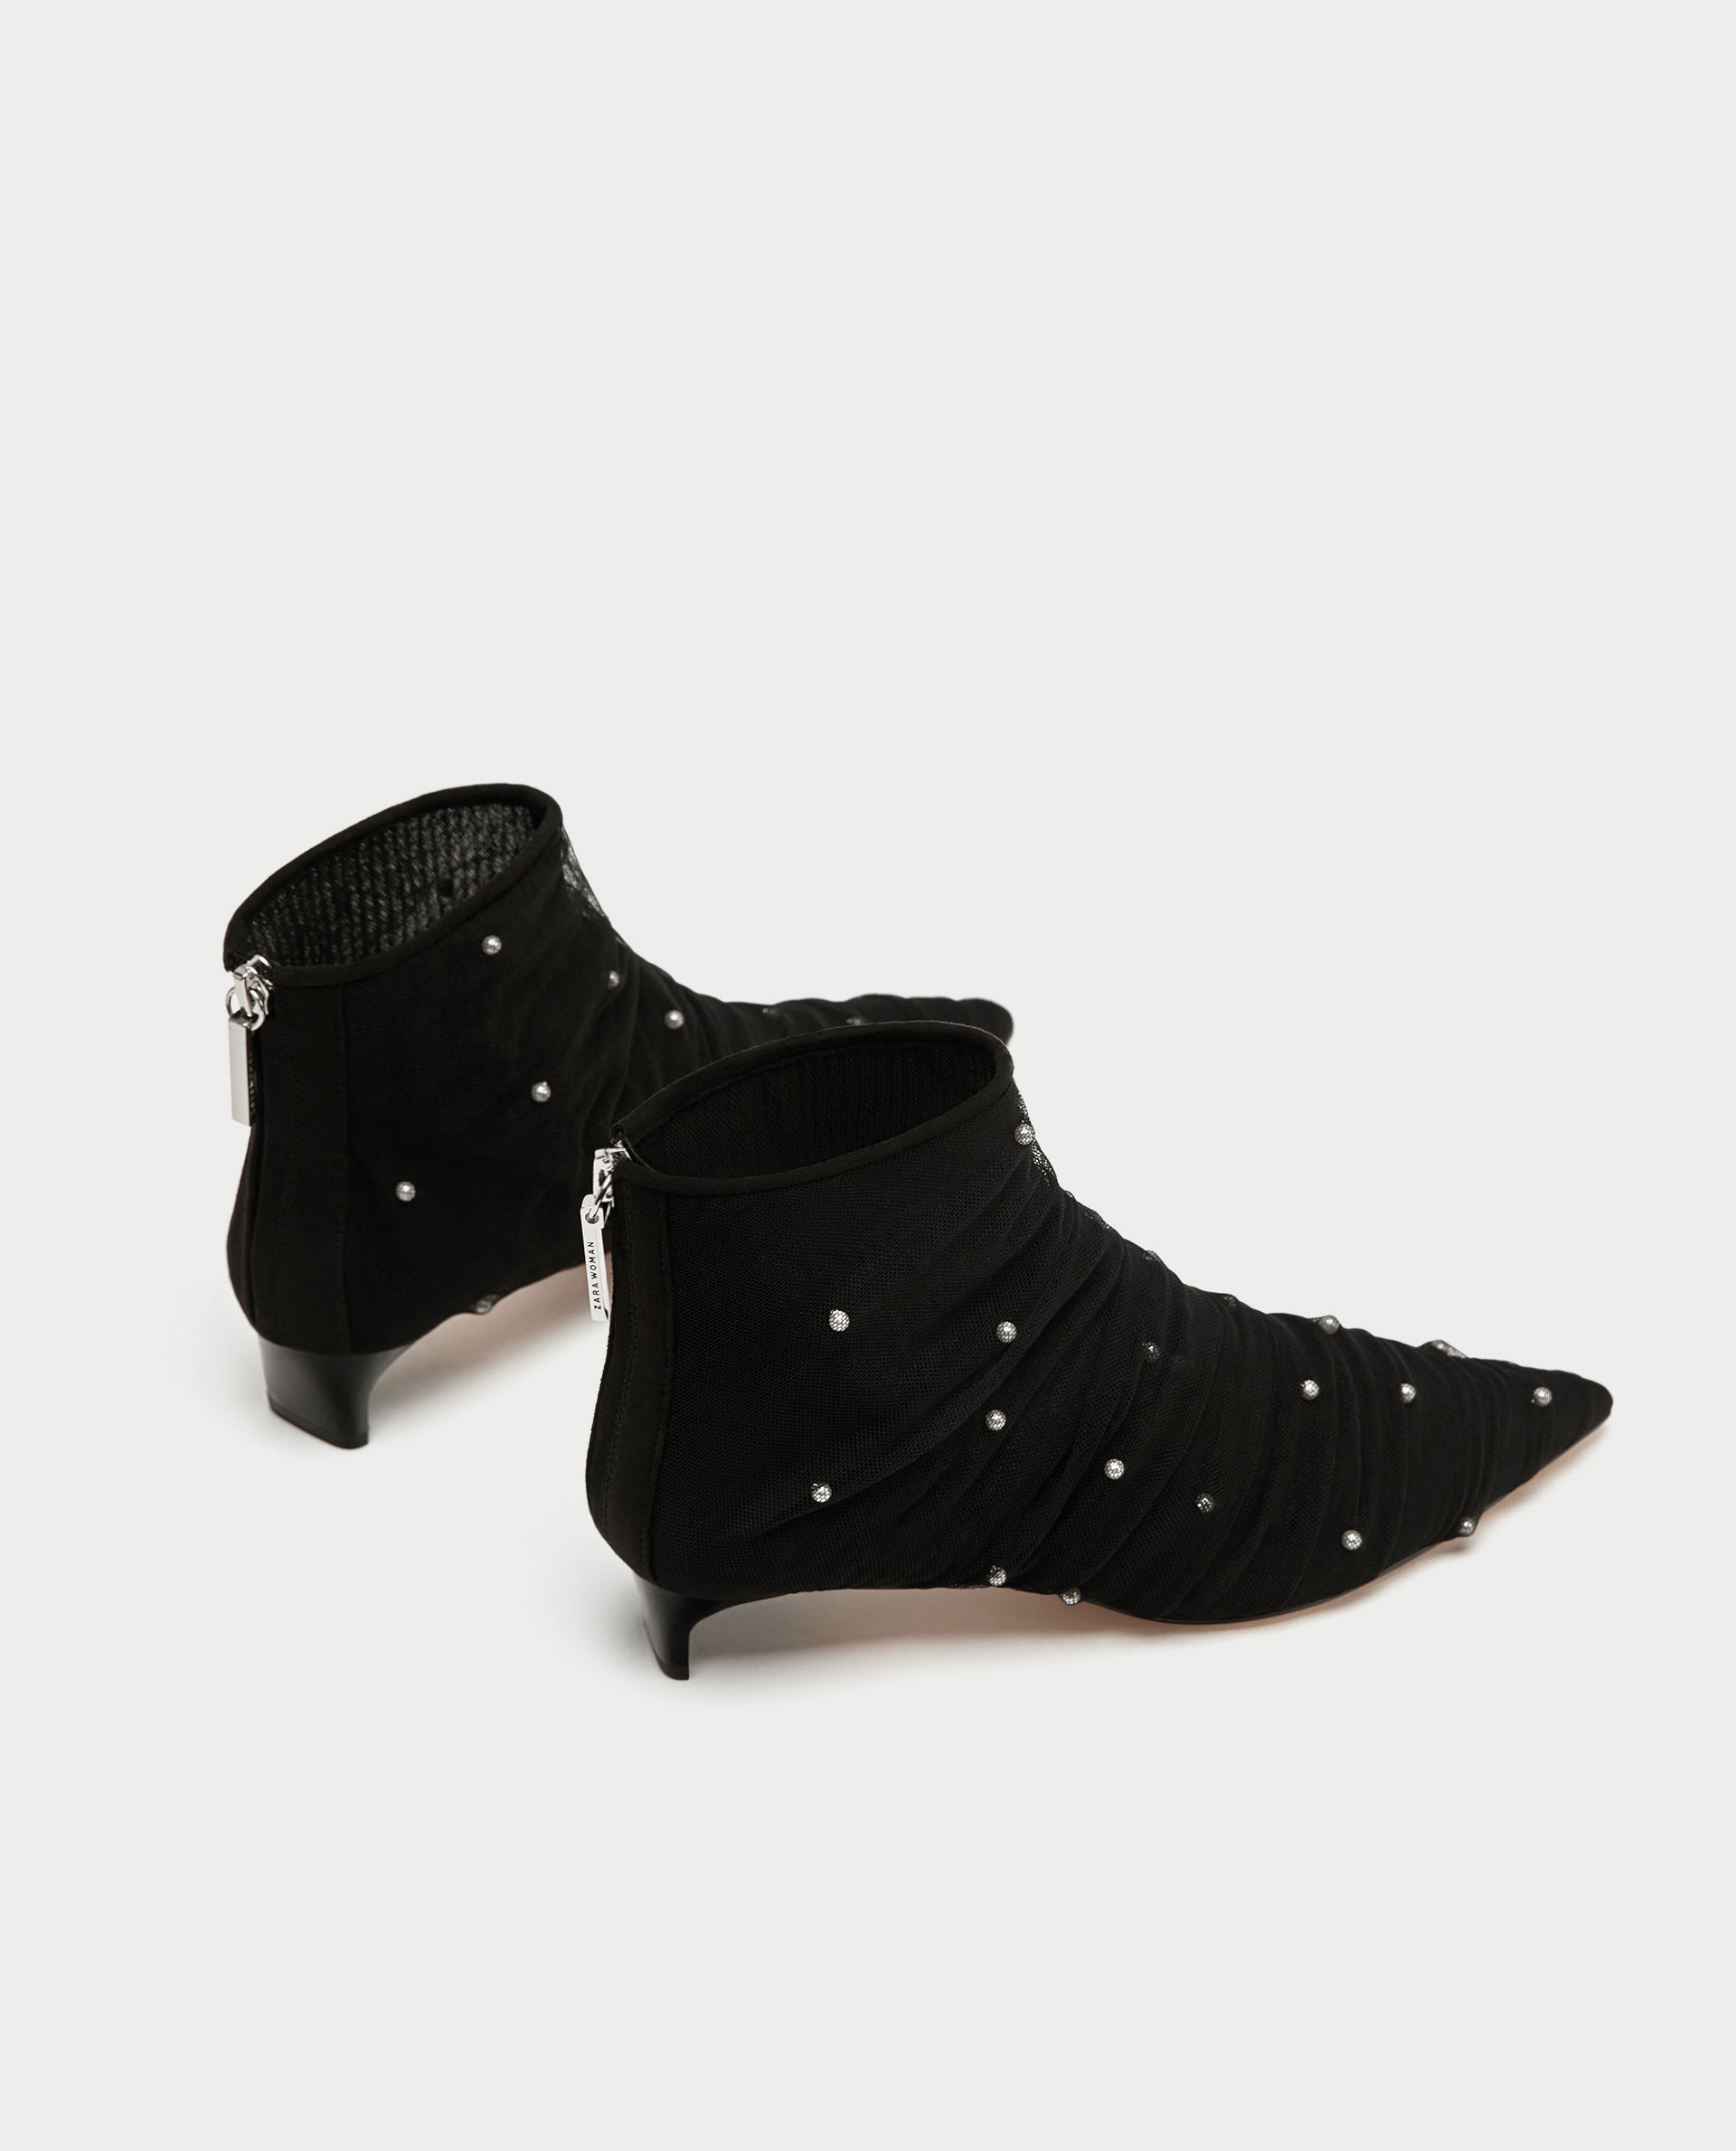 ROSE & IVY Journal The Find Pearl Dotted Zara Ankle Boots